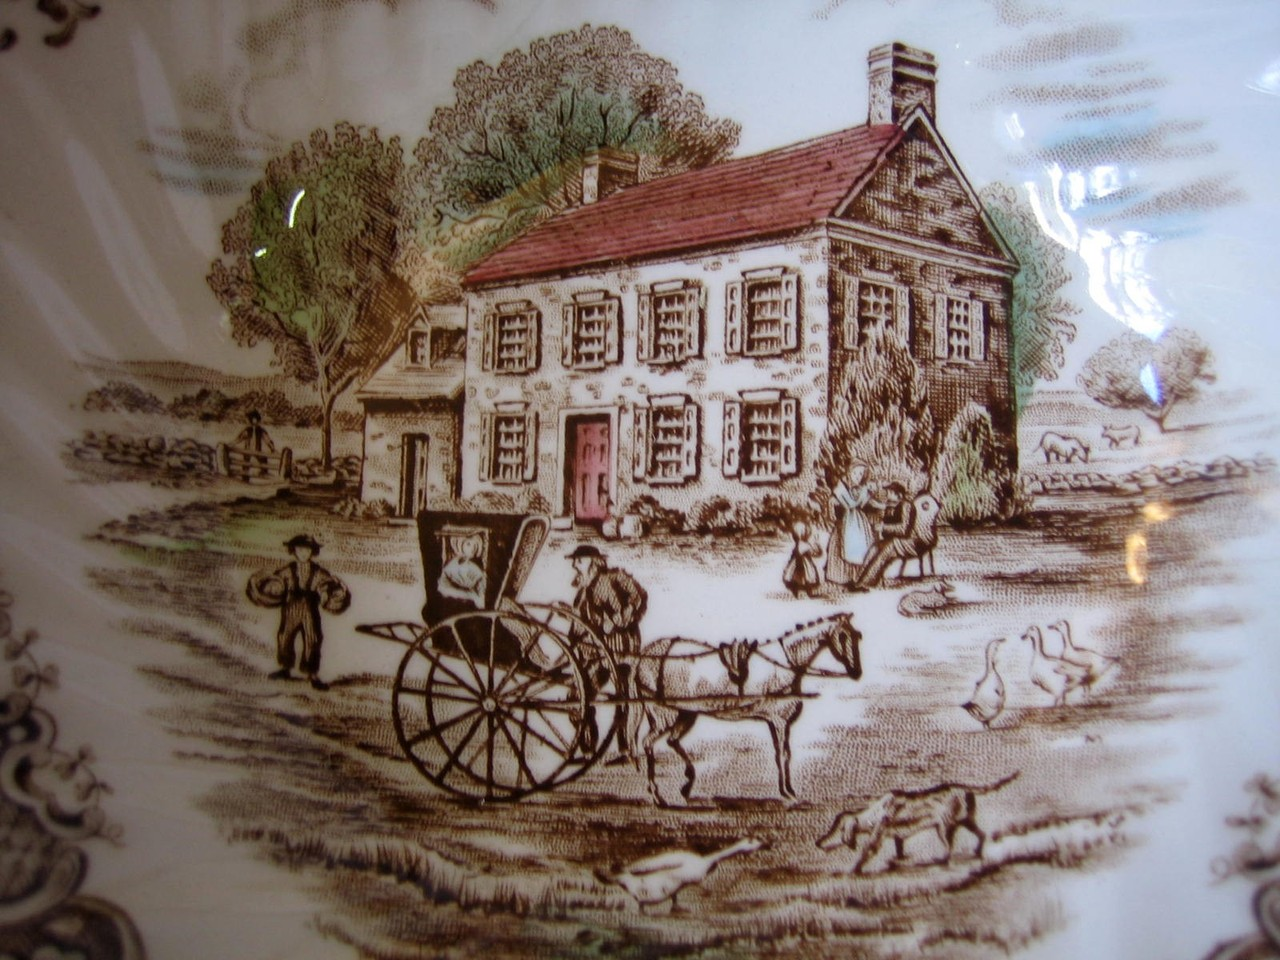 Brown Toile Pennsylvania Fieldstone Carriage Horse Dog Geese Bowl Center www.DecorativeDishes.net